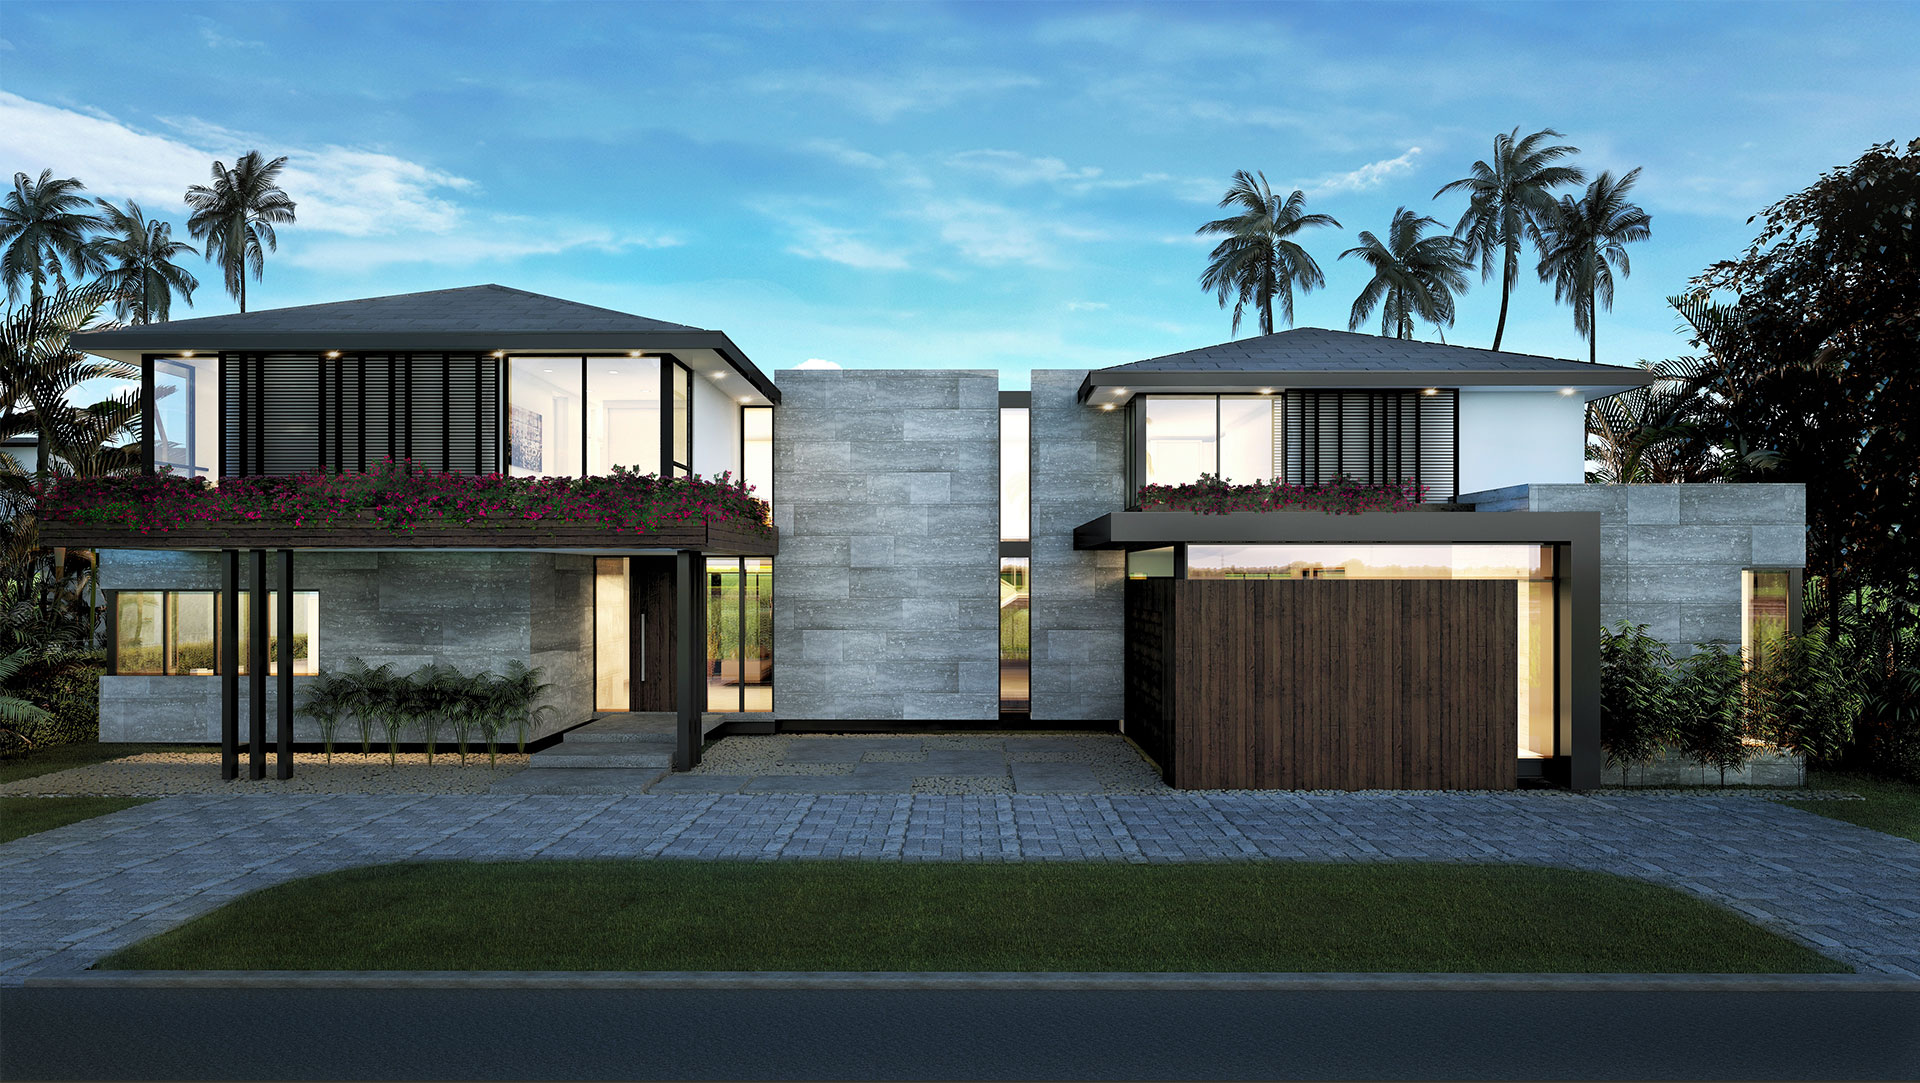 Architecture and Construction Administration project in Bal Cross, Florida